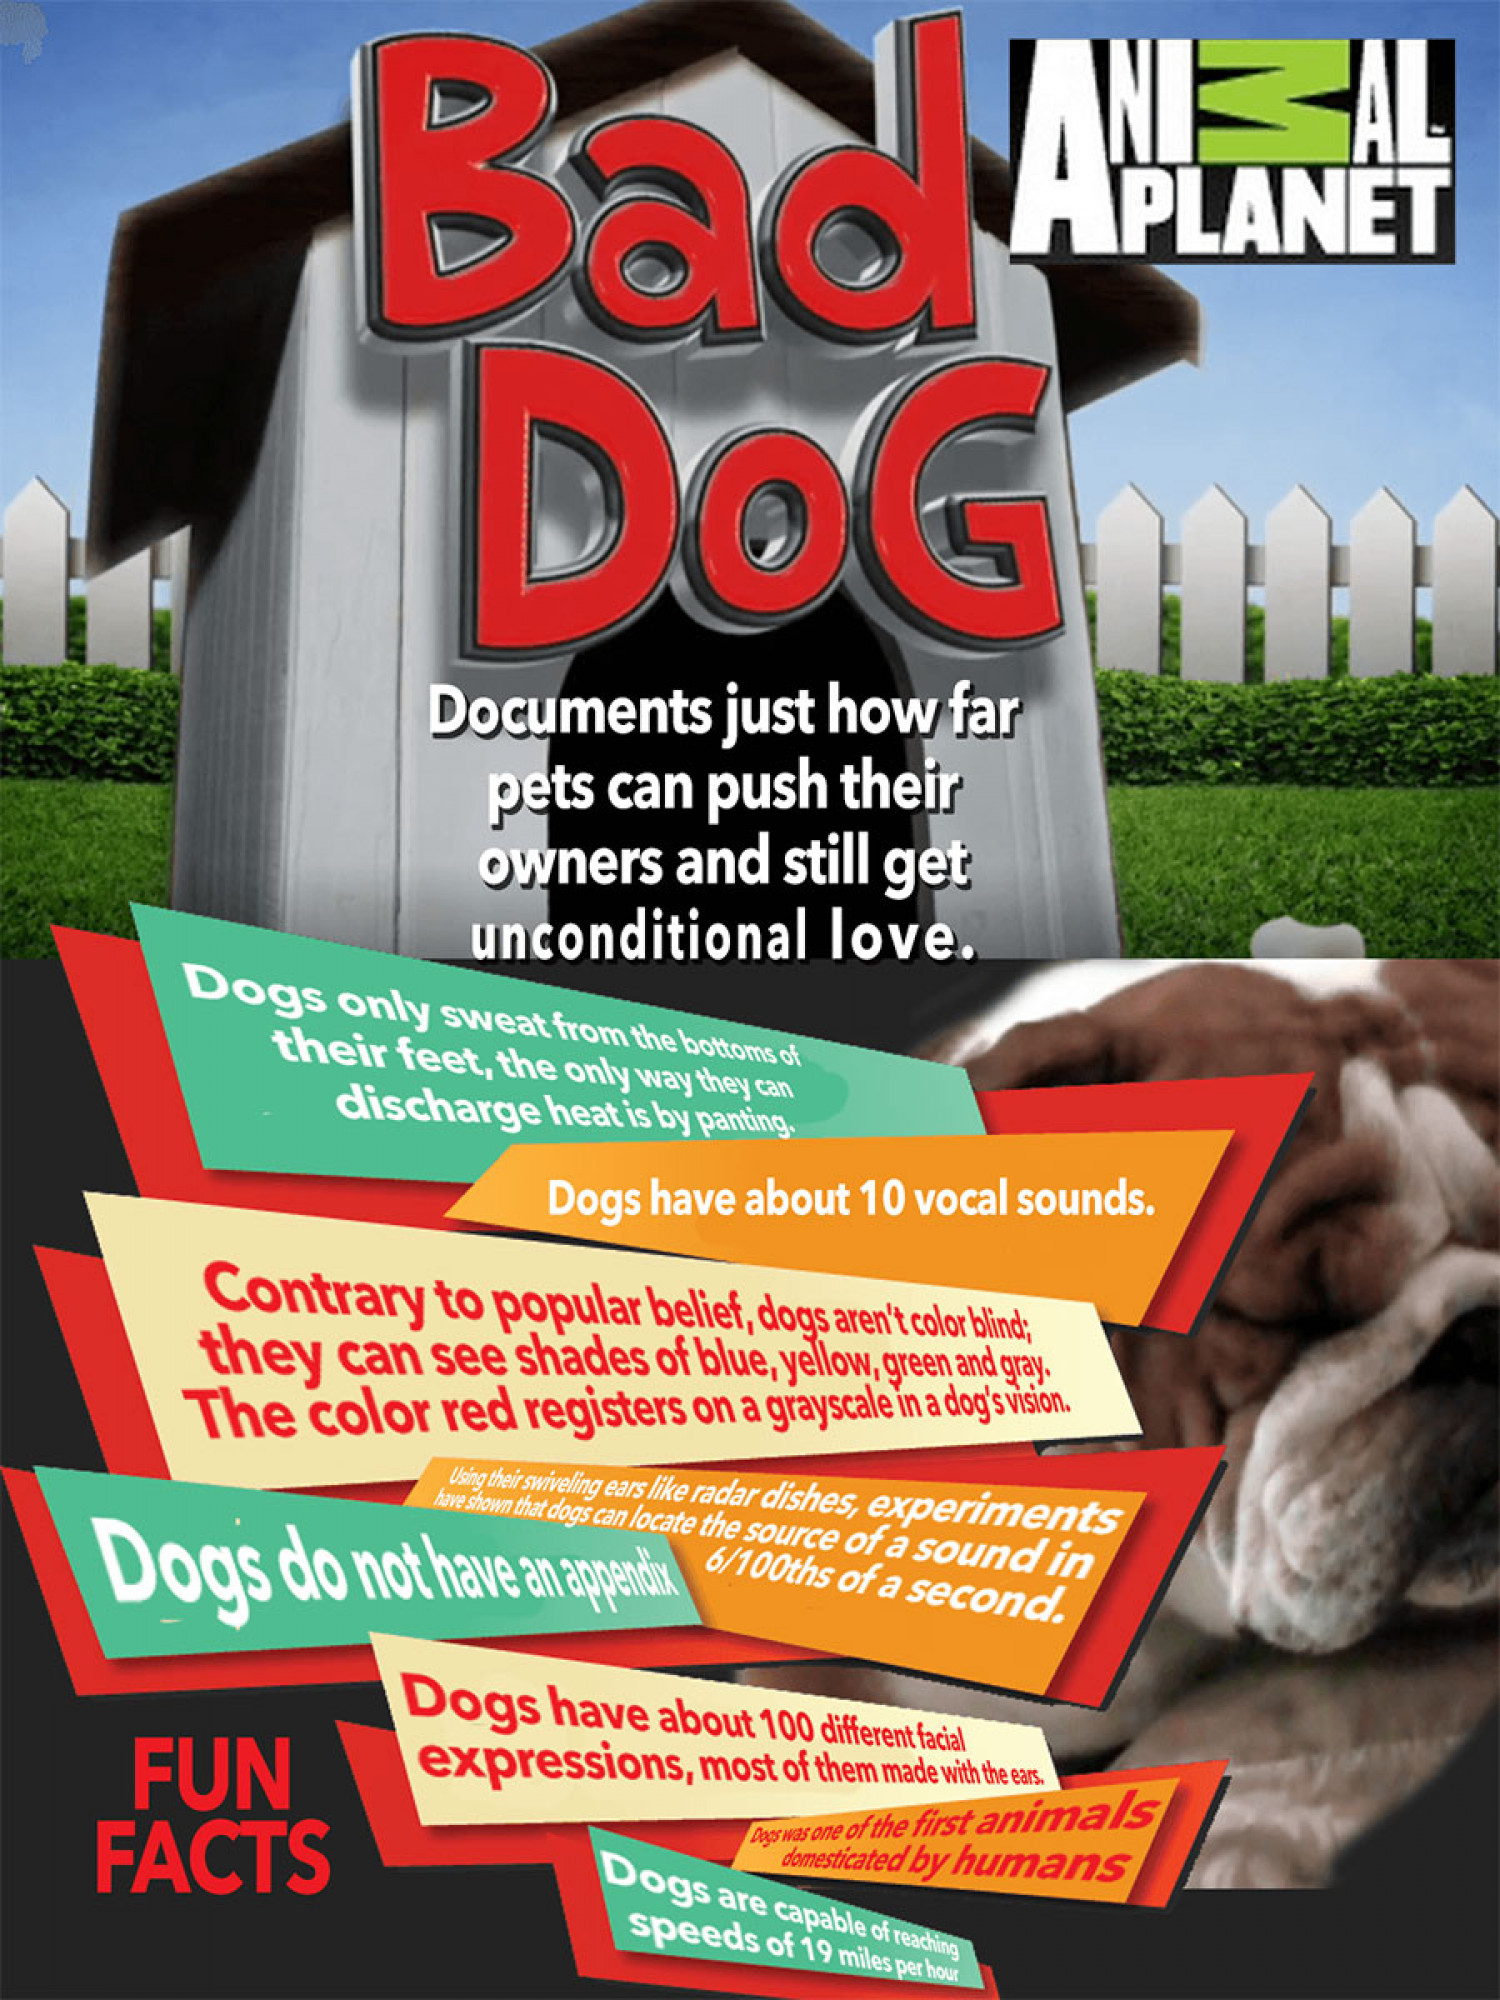 Bad Dogs: So bad and yet the pet owners are still gaga over him Infographic